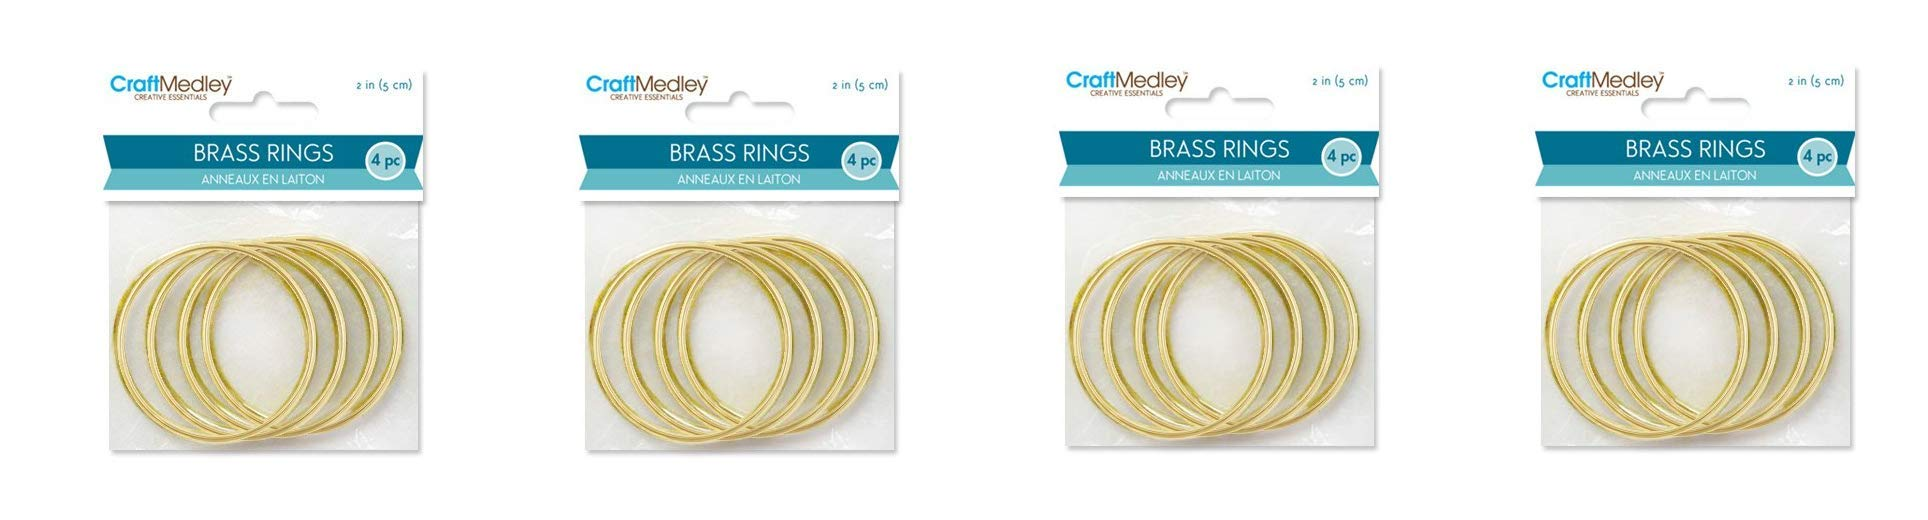 CraftMedley Brass Rings, 2in, Round, 4-Piece, 2 (Fоur Расk)